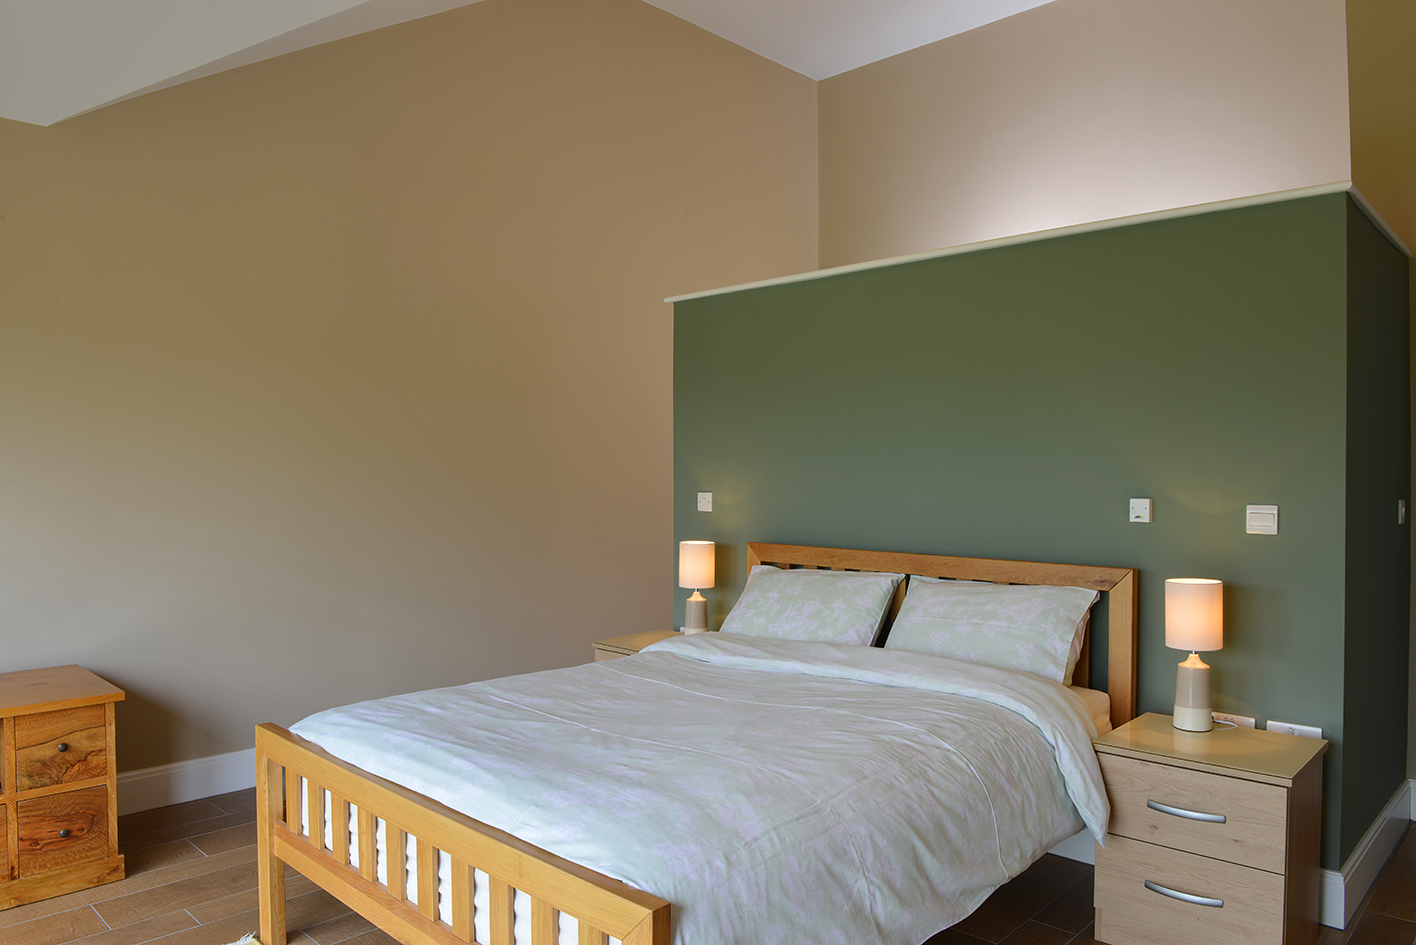 in this bedroom little rascal adds a warming cosy touch complemented